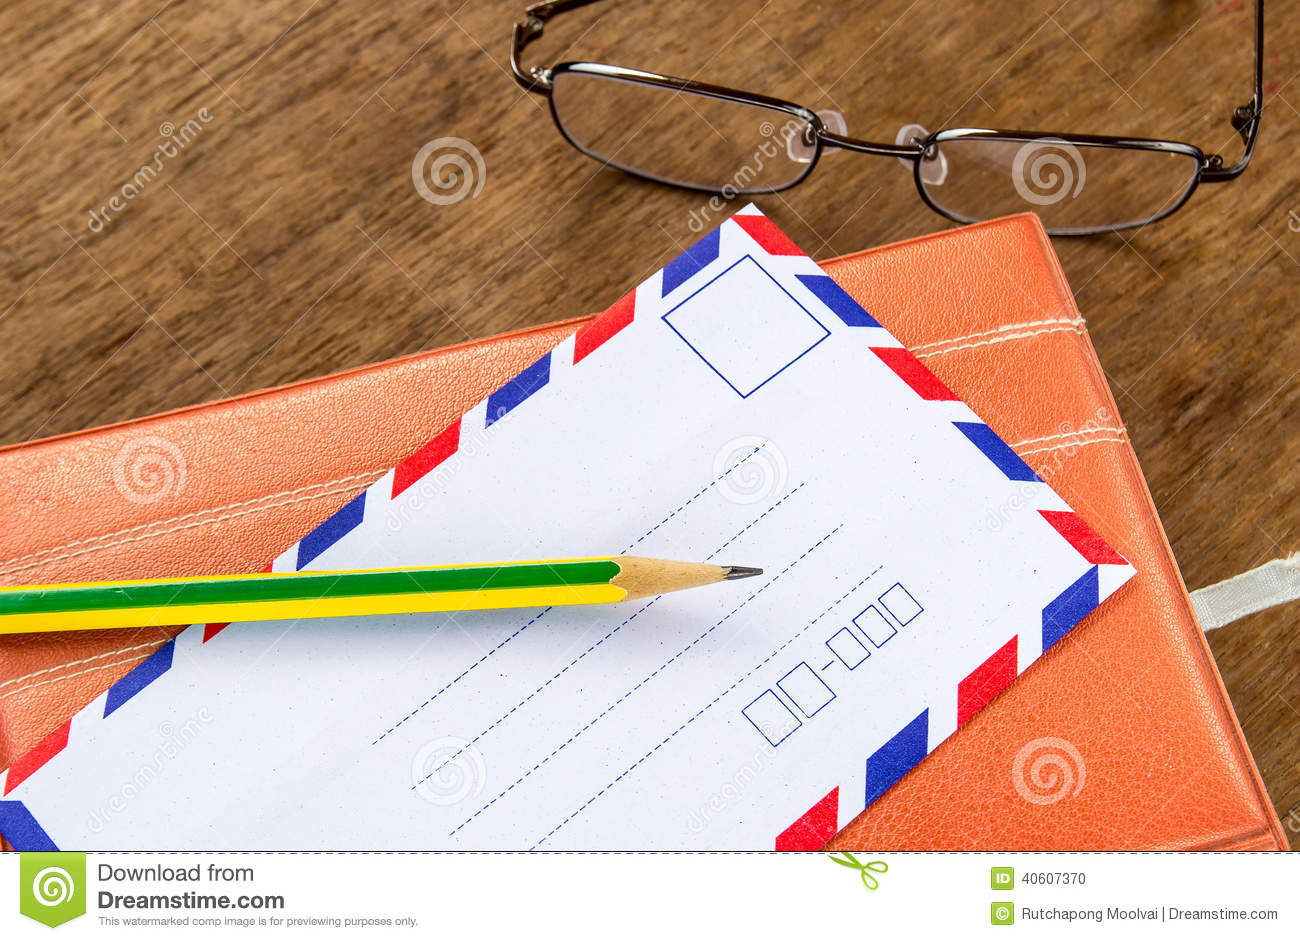 Vintage envelope, pencils, notebook and glasses on a wood floor